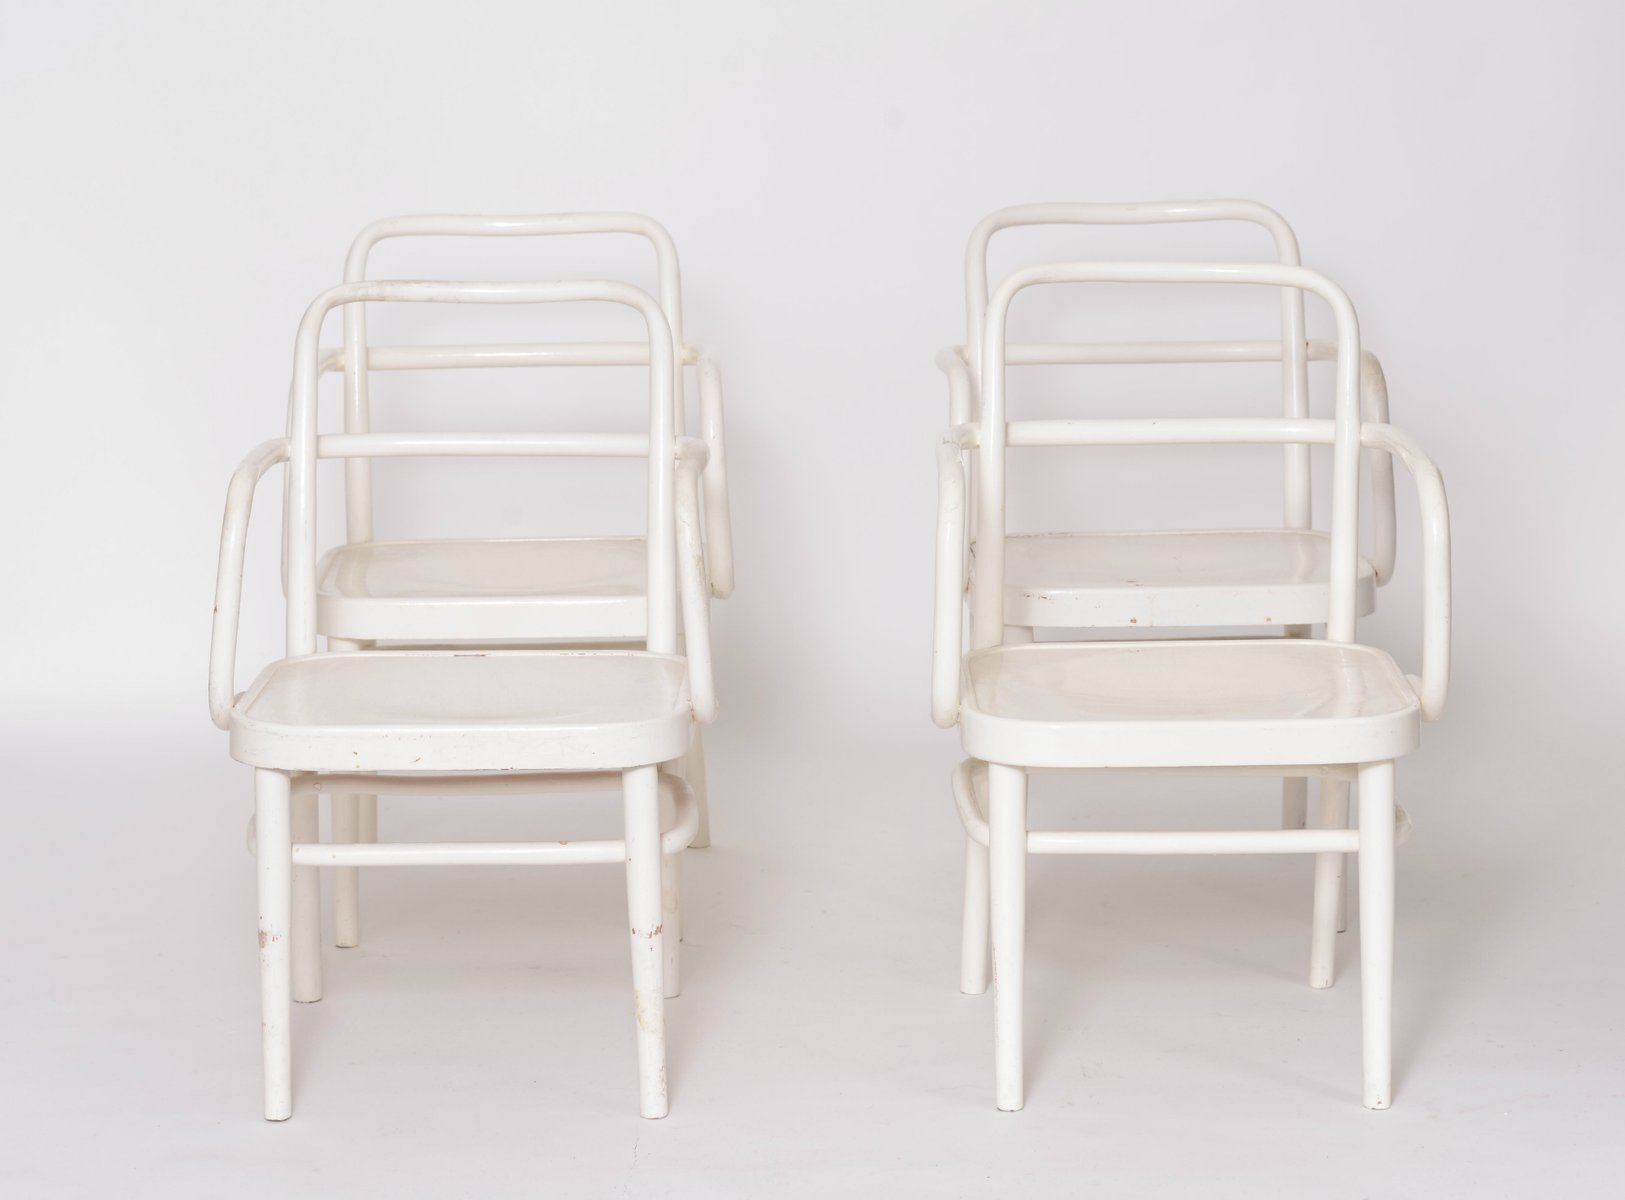 Bentwood chairs white - Austrian A 64 F White Bentwood Chairs By Adolf Schneck For Thonet 1929 Set Of 4